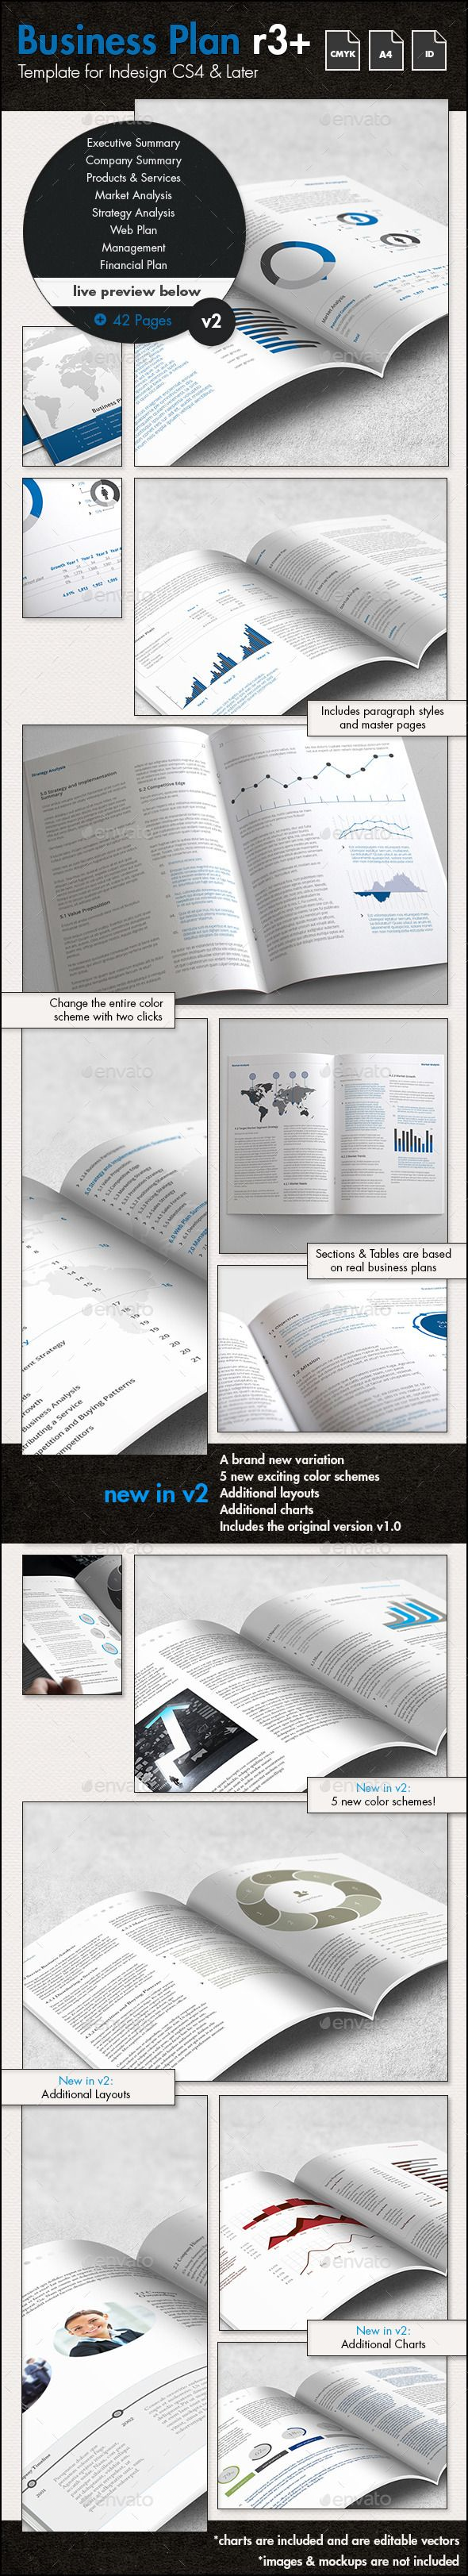 Professional Business Plan Template   A4 Portrait  CS4  8 267x11 692     Professional Business Plan Template   A4 Portrait  CS4  8 267x11 692  a4